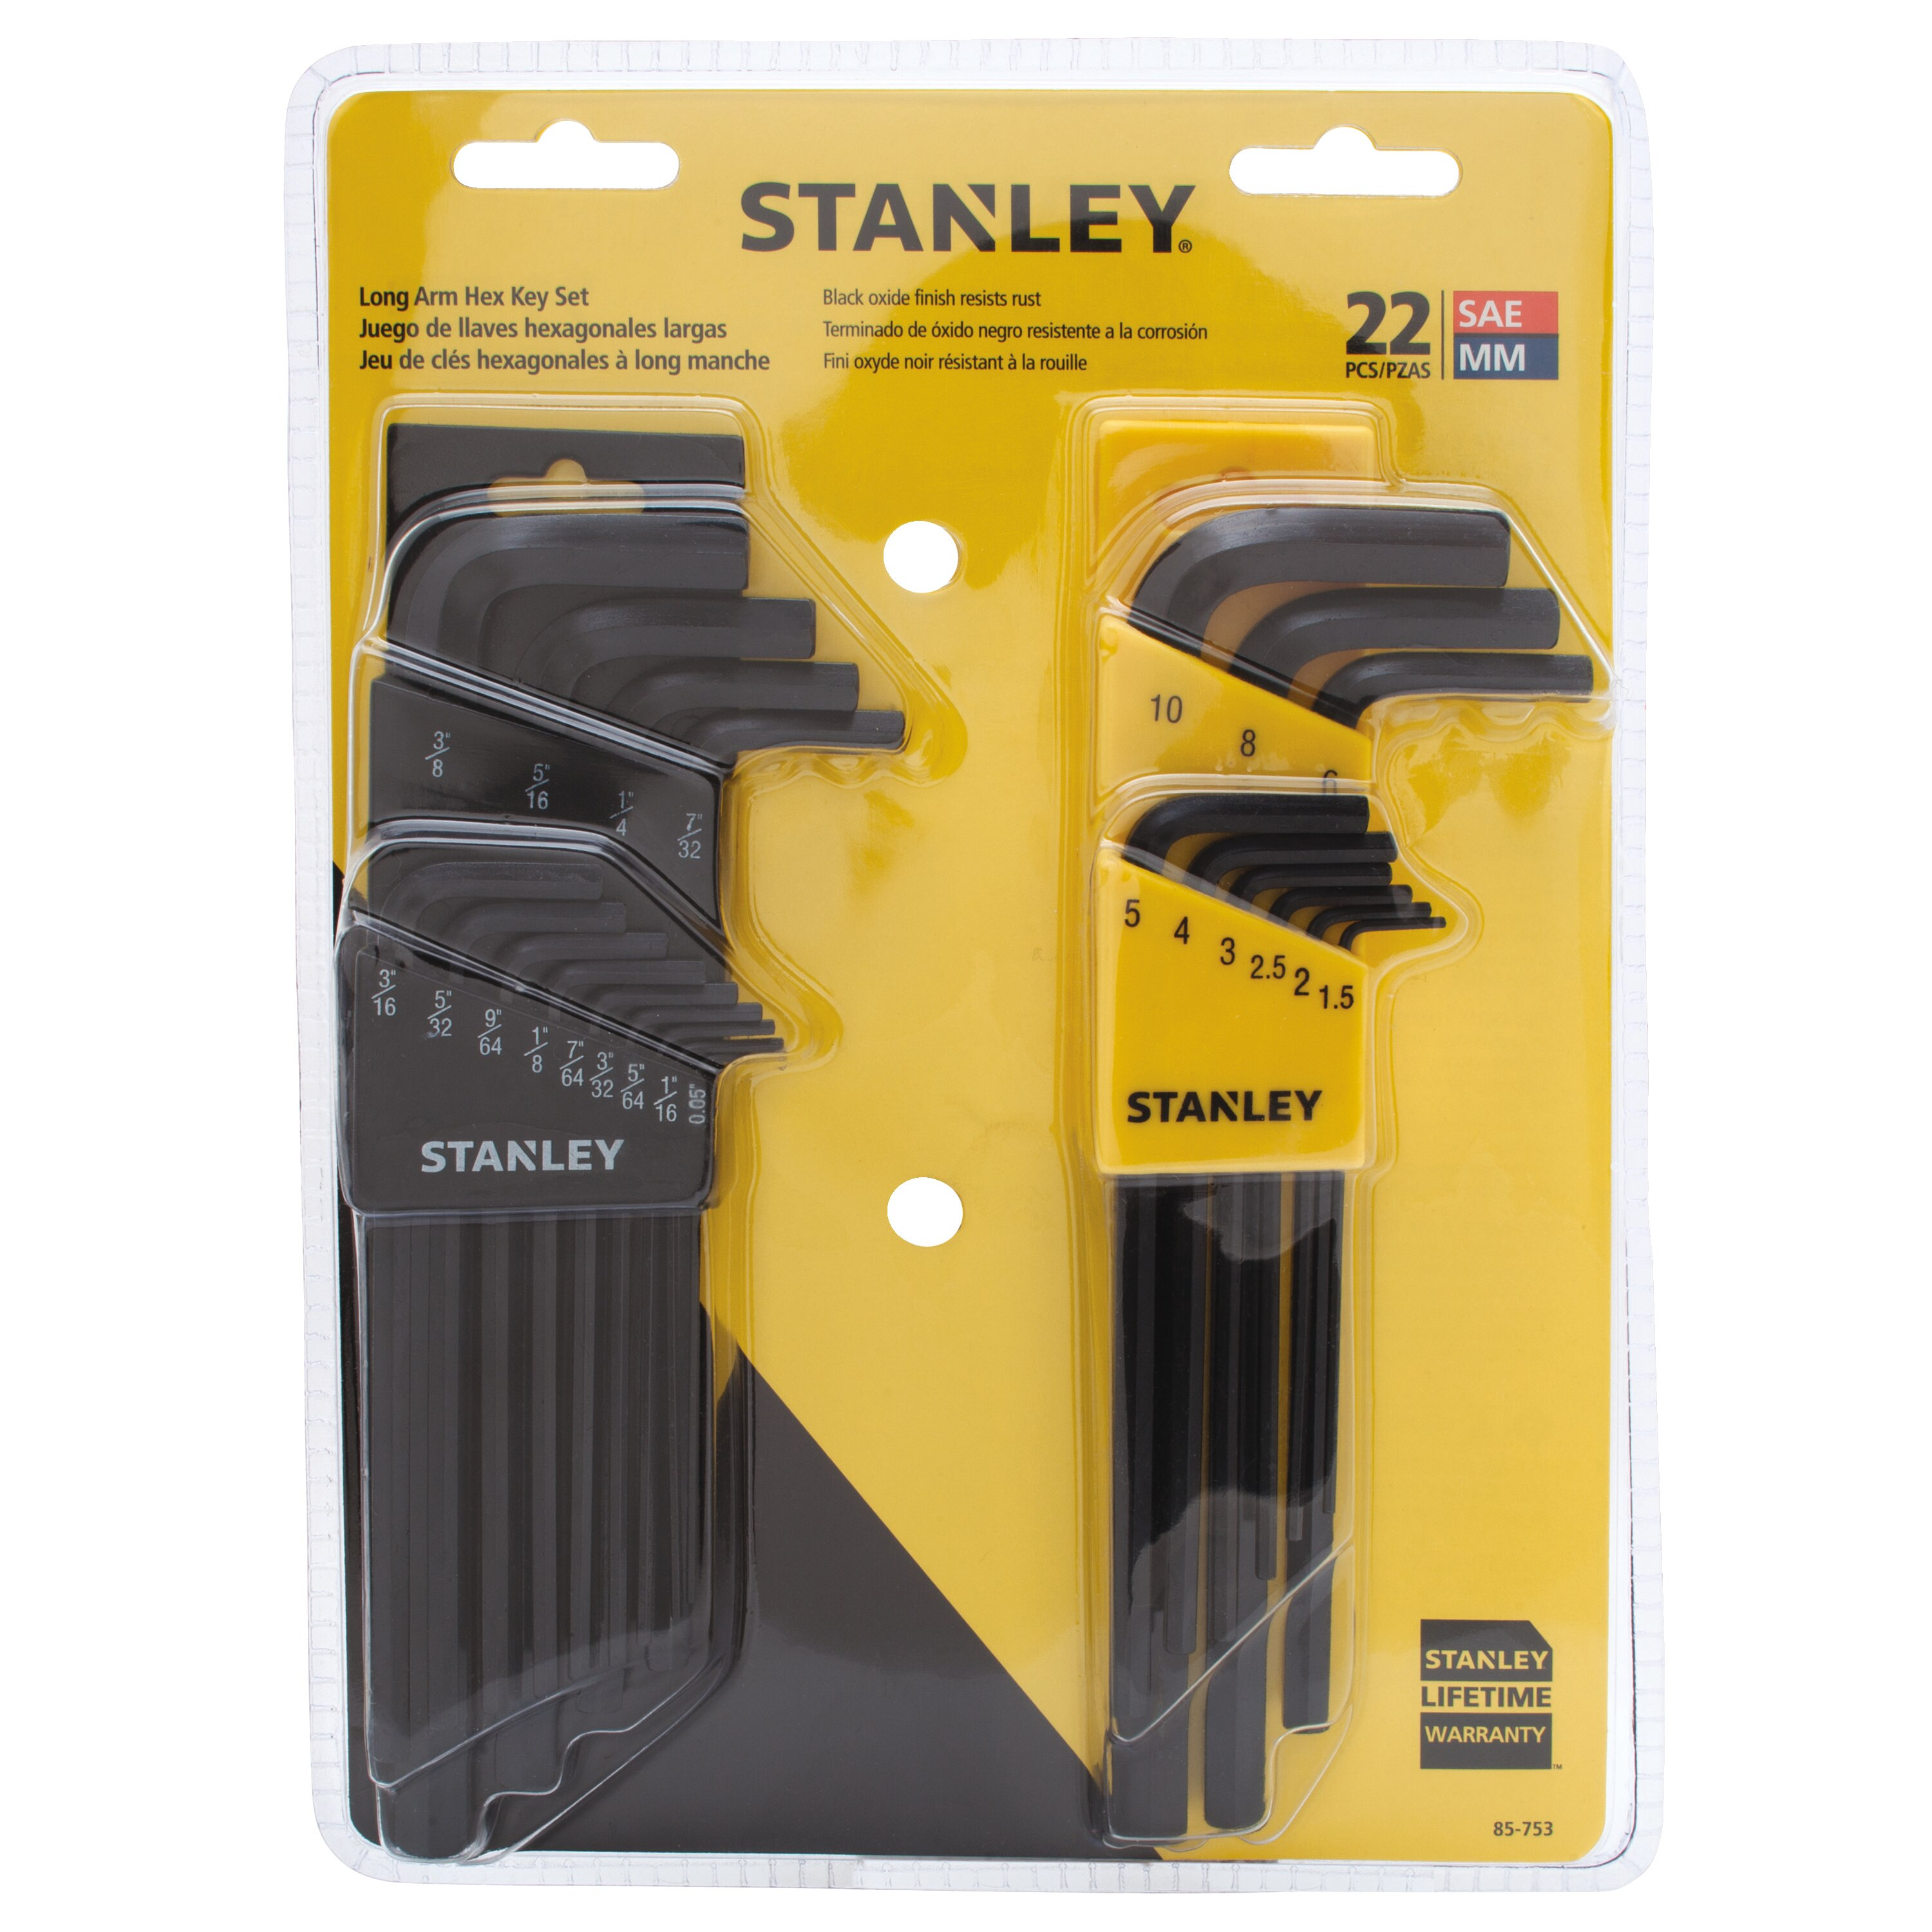 Stanley Tools - 22 pc Hex Key Set - 85-753